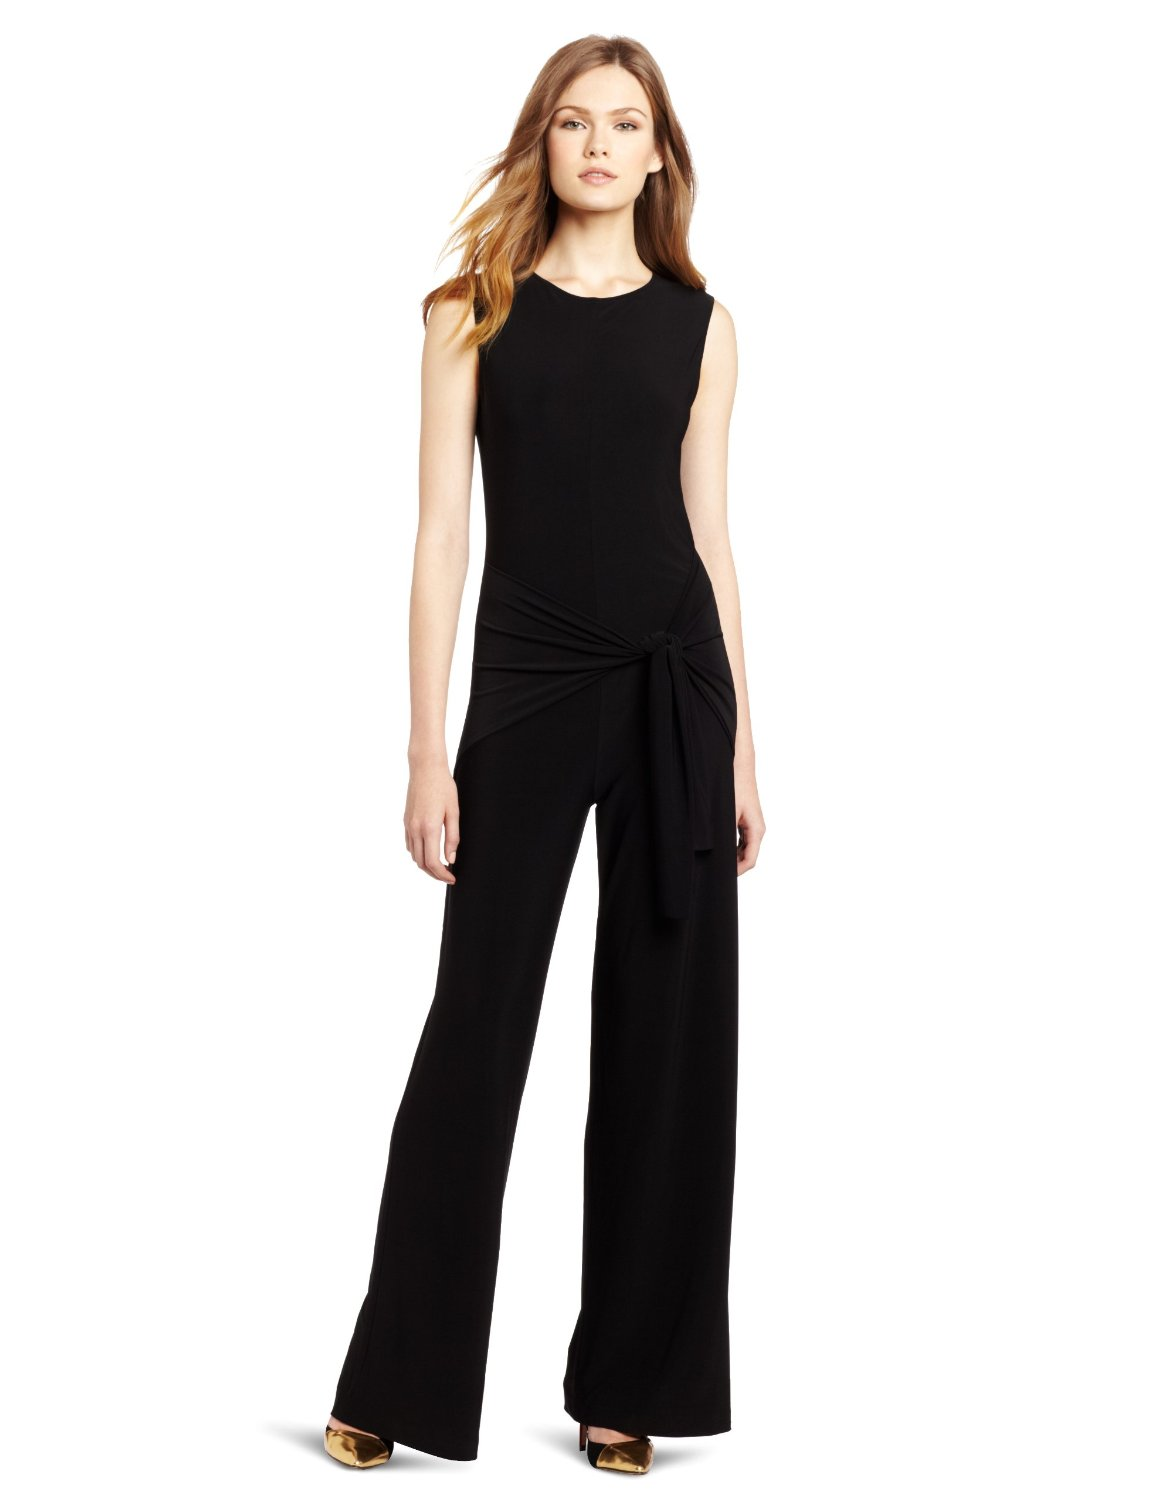 Model Jumpsuit For Women 2013 Wholesale Women Jumpsuit Buy 2013 New Womens